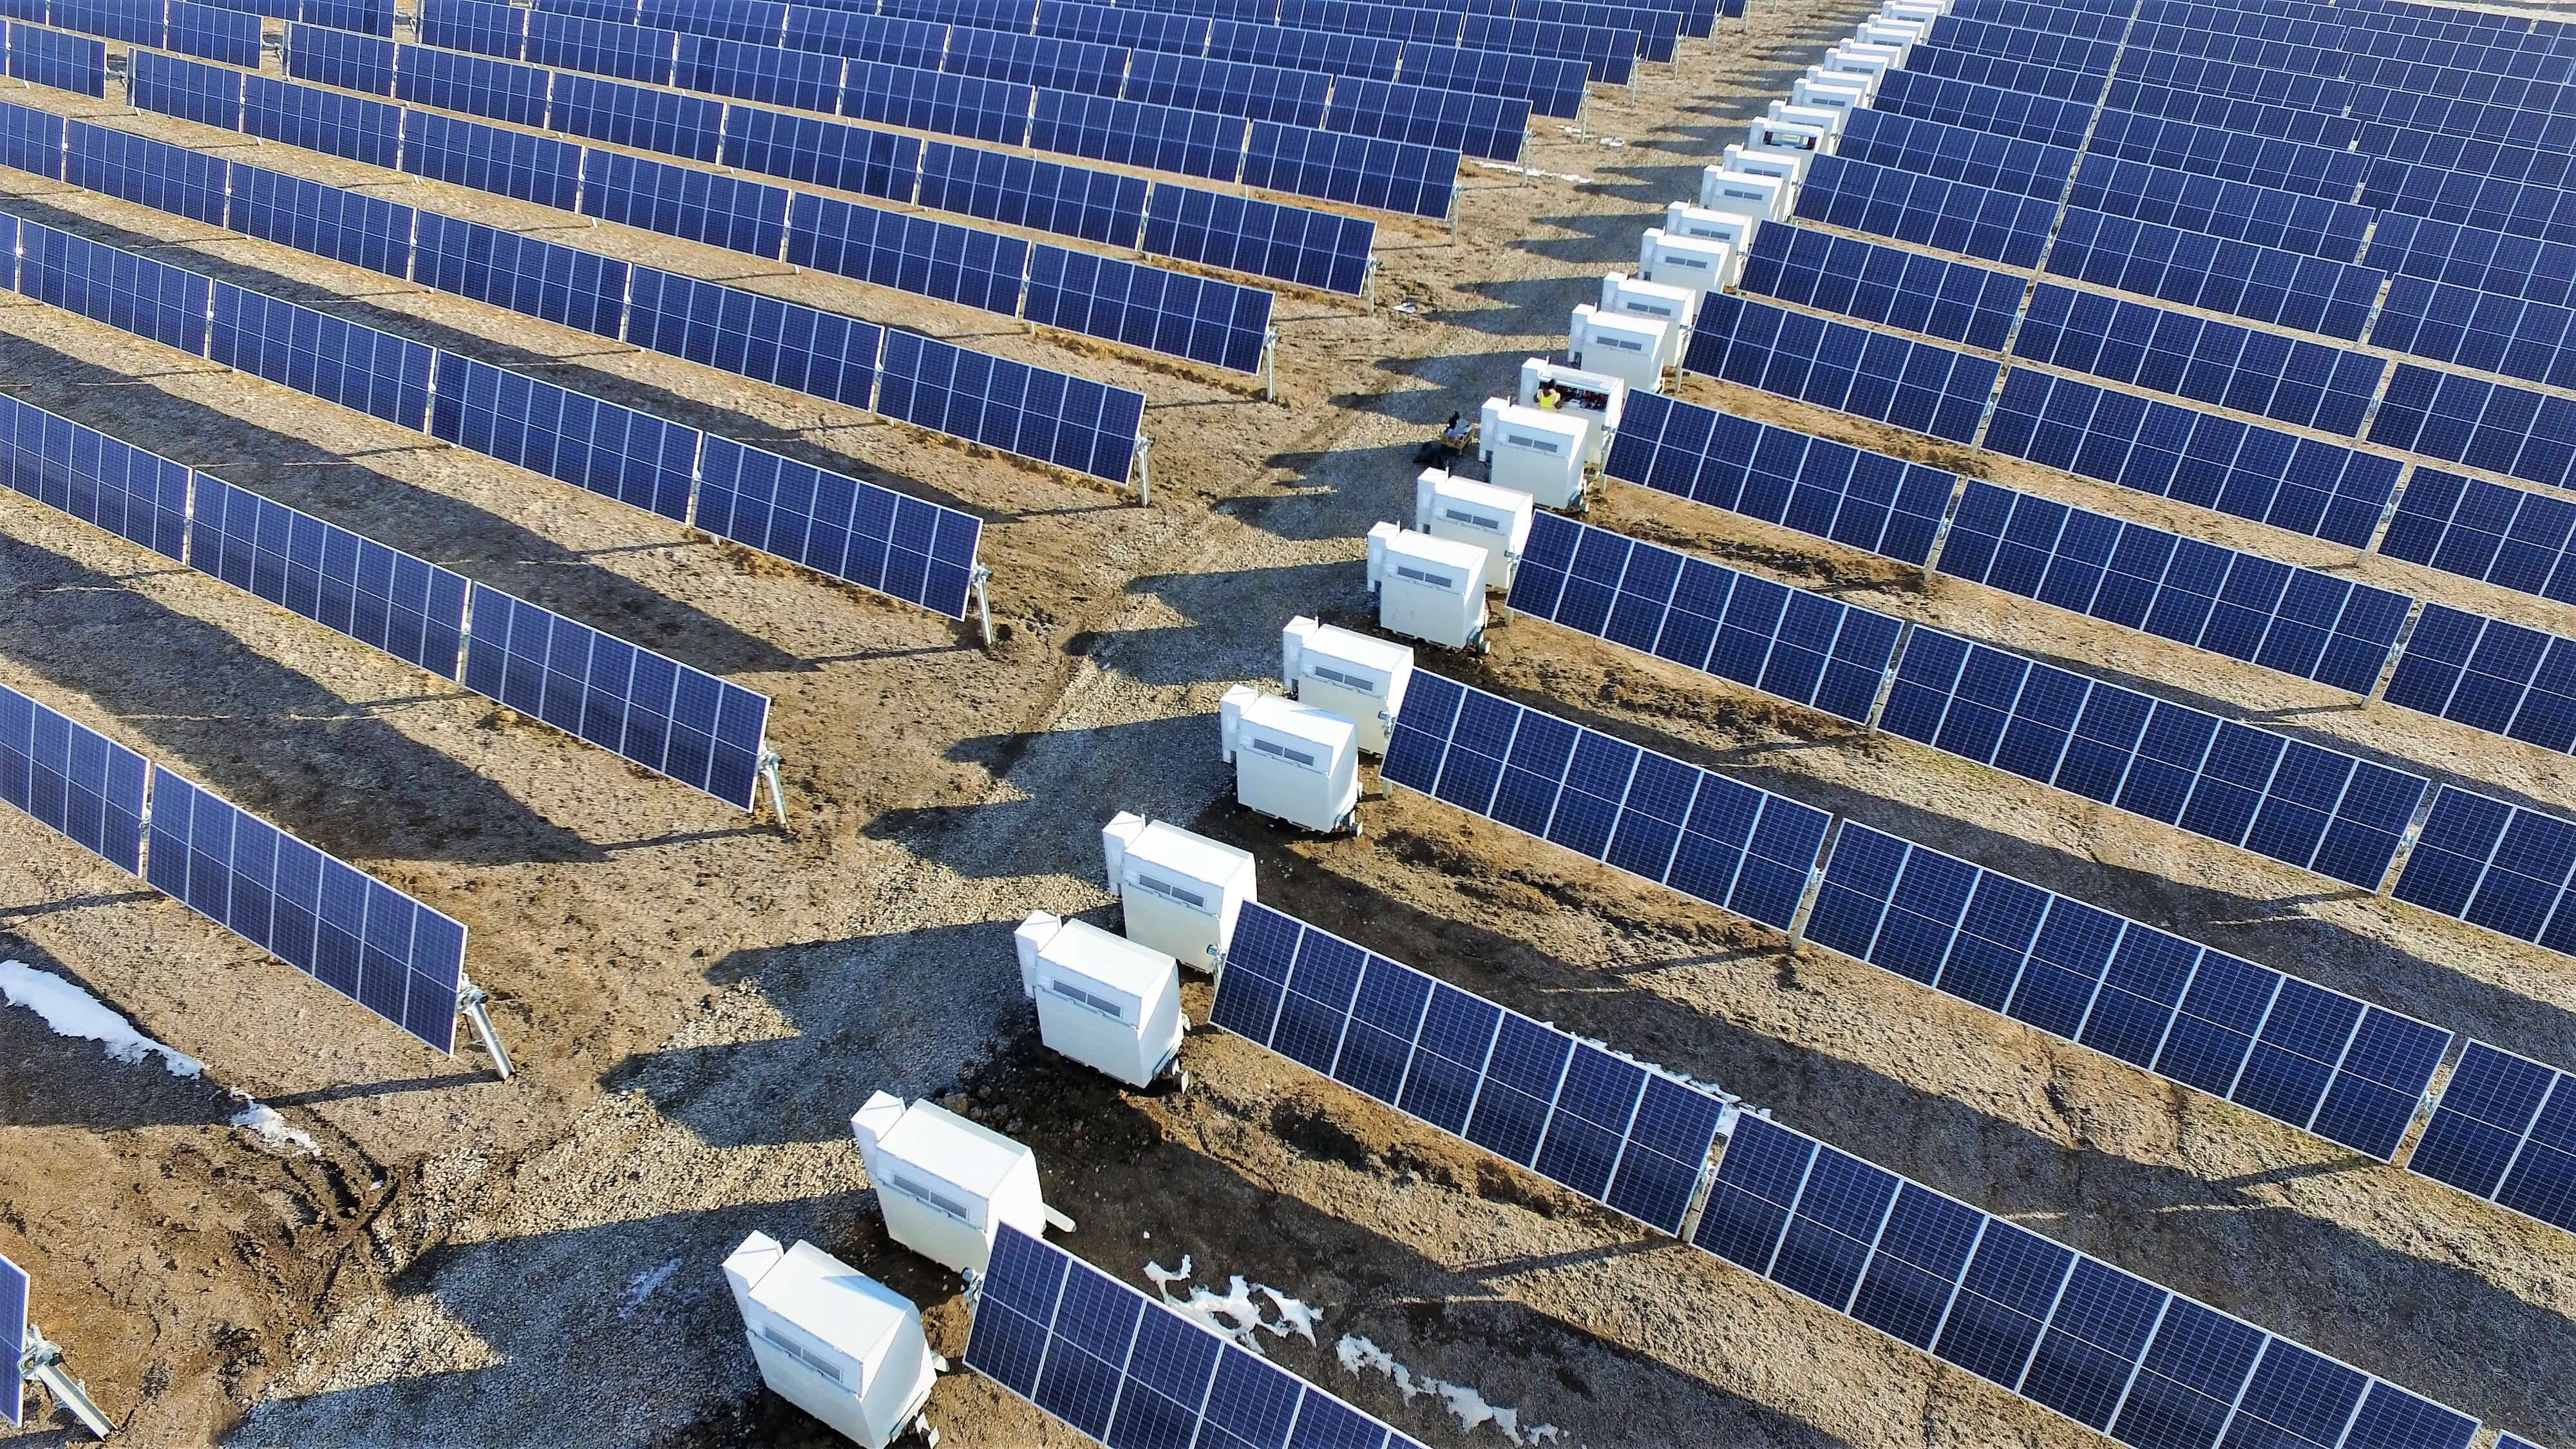 Why Energy Storage Is More Difficult to Scale than Solar PV